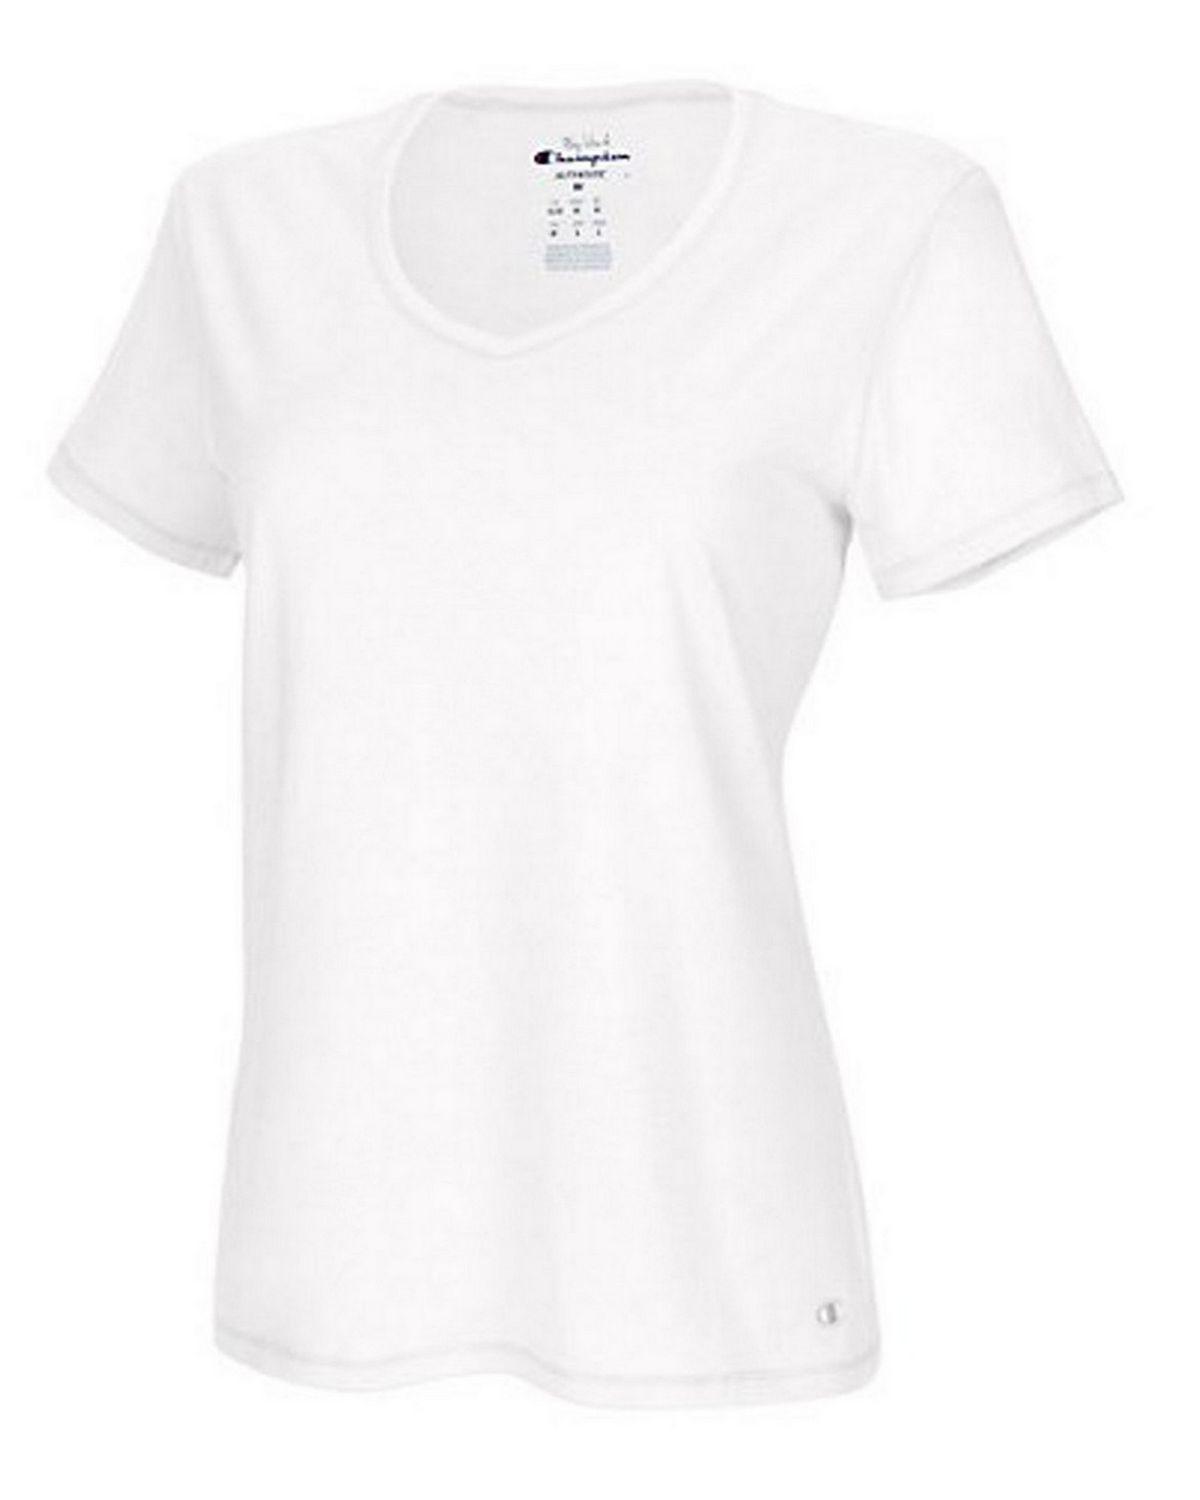 Champion 8875 Authentic Womens Jersey Tee - White - XL 8875